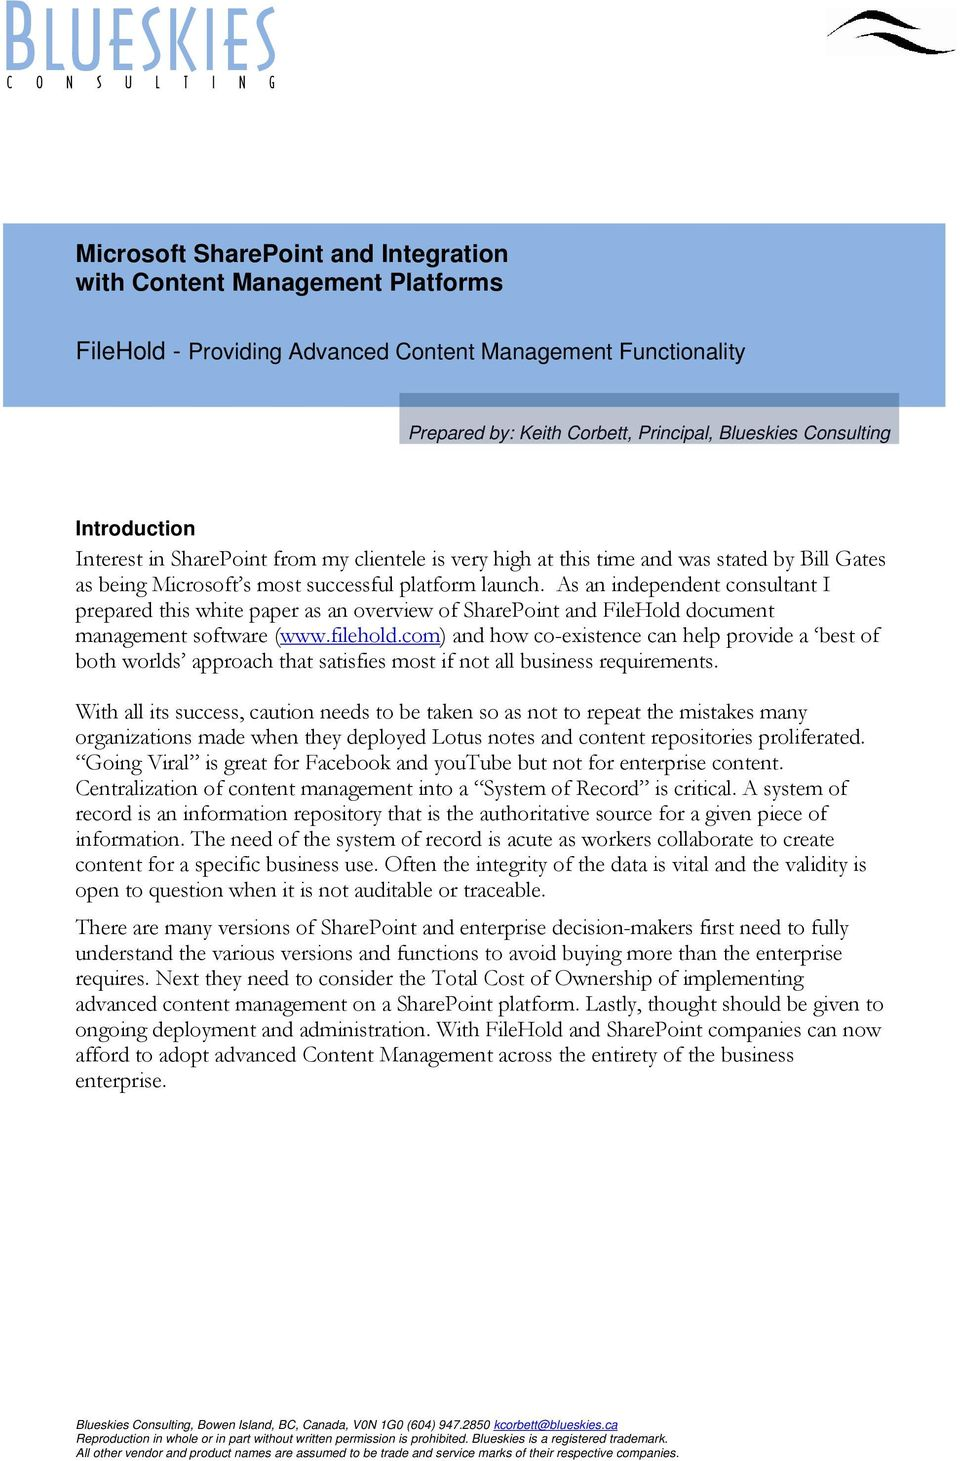 As an independent consultant I prepared this white paper as an overview of SharePoint and FileHold document management software (www.filehold.